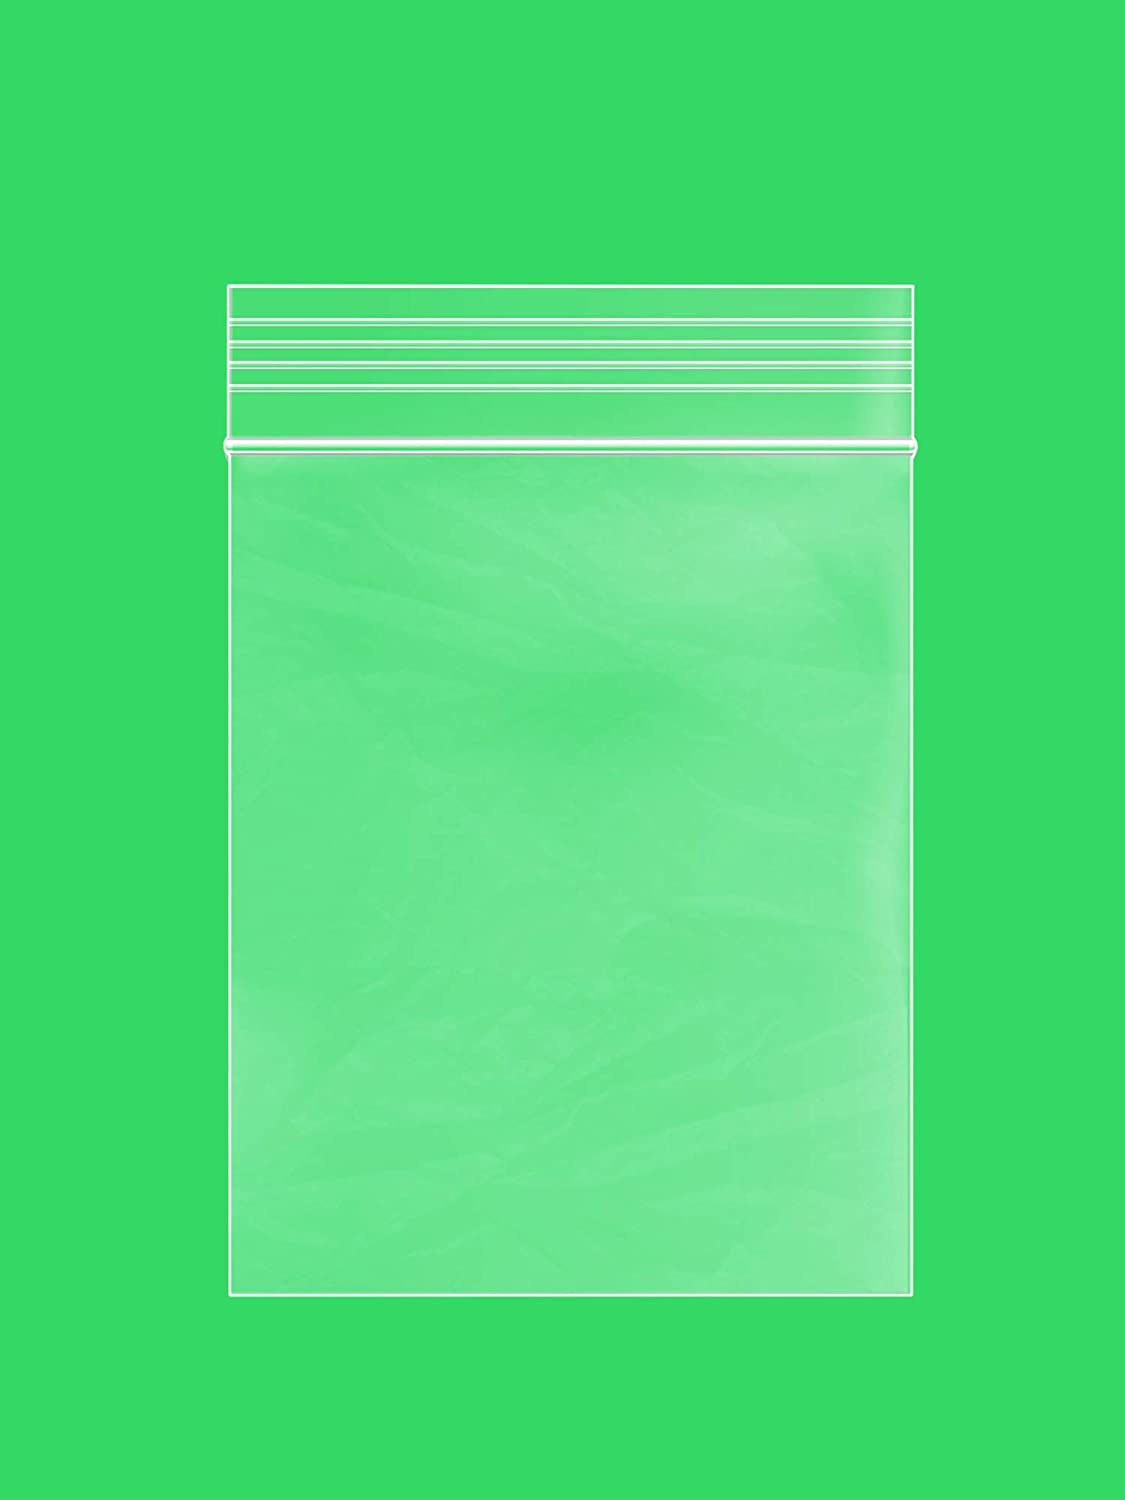 2.5 x 3 inches, 4Mil Clear Reclosable Zip Lock Bags, Case of 1,000 - GPI Brand